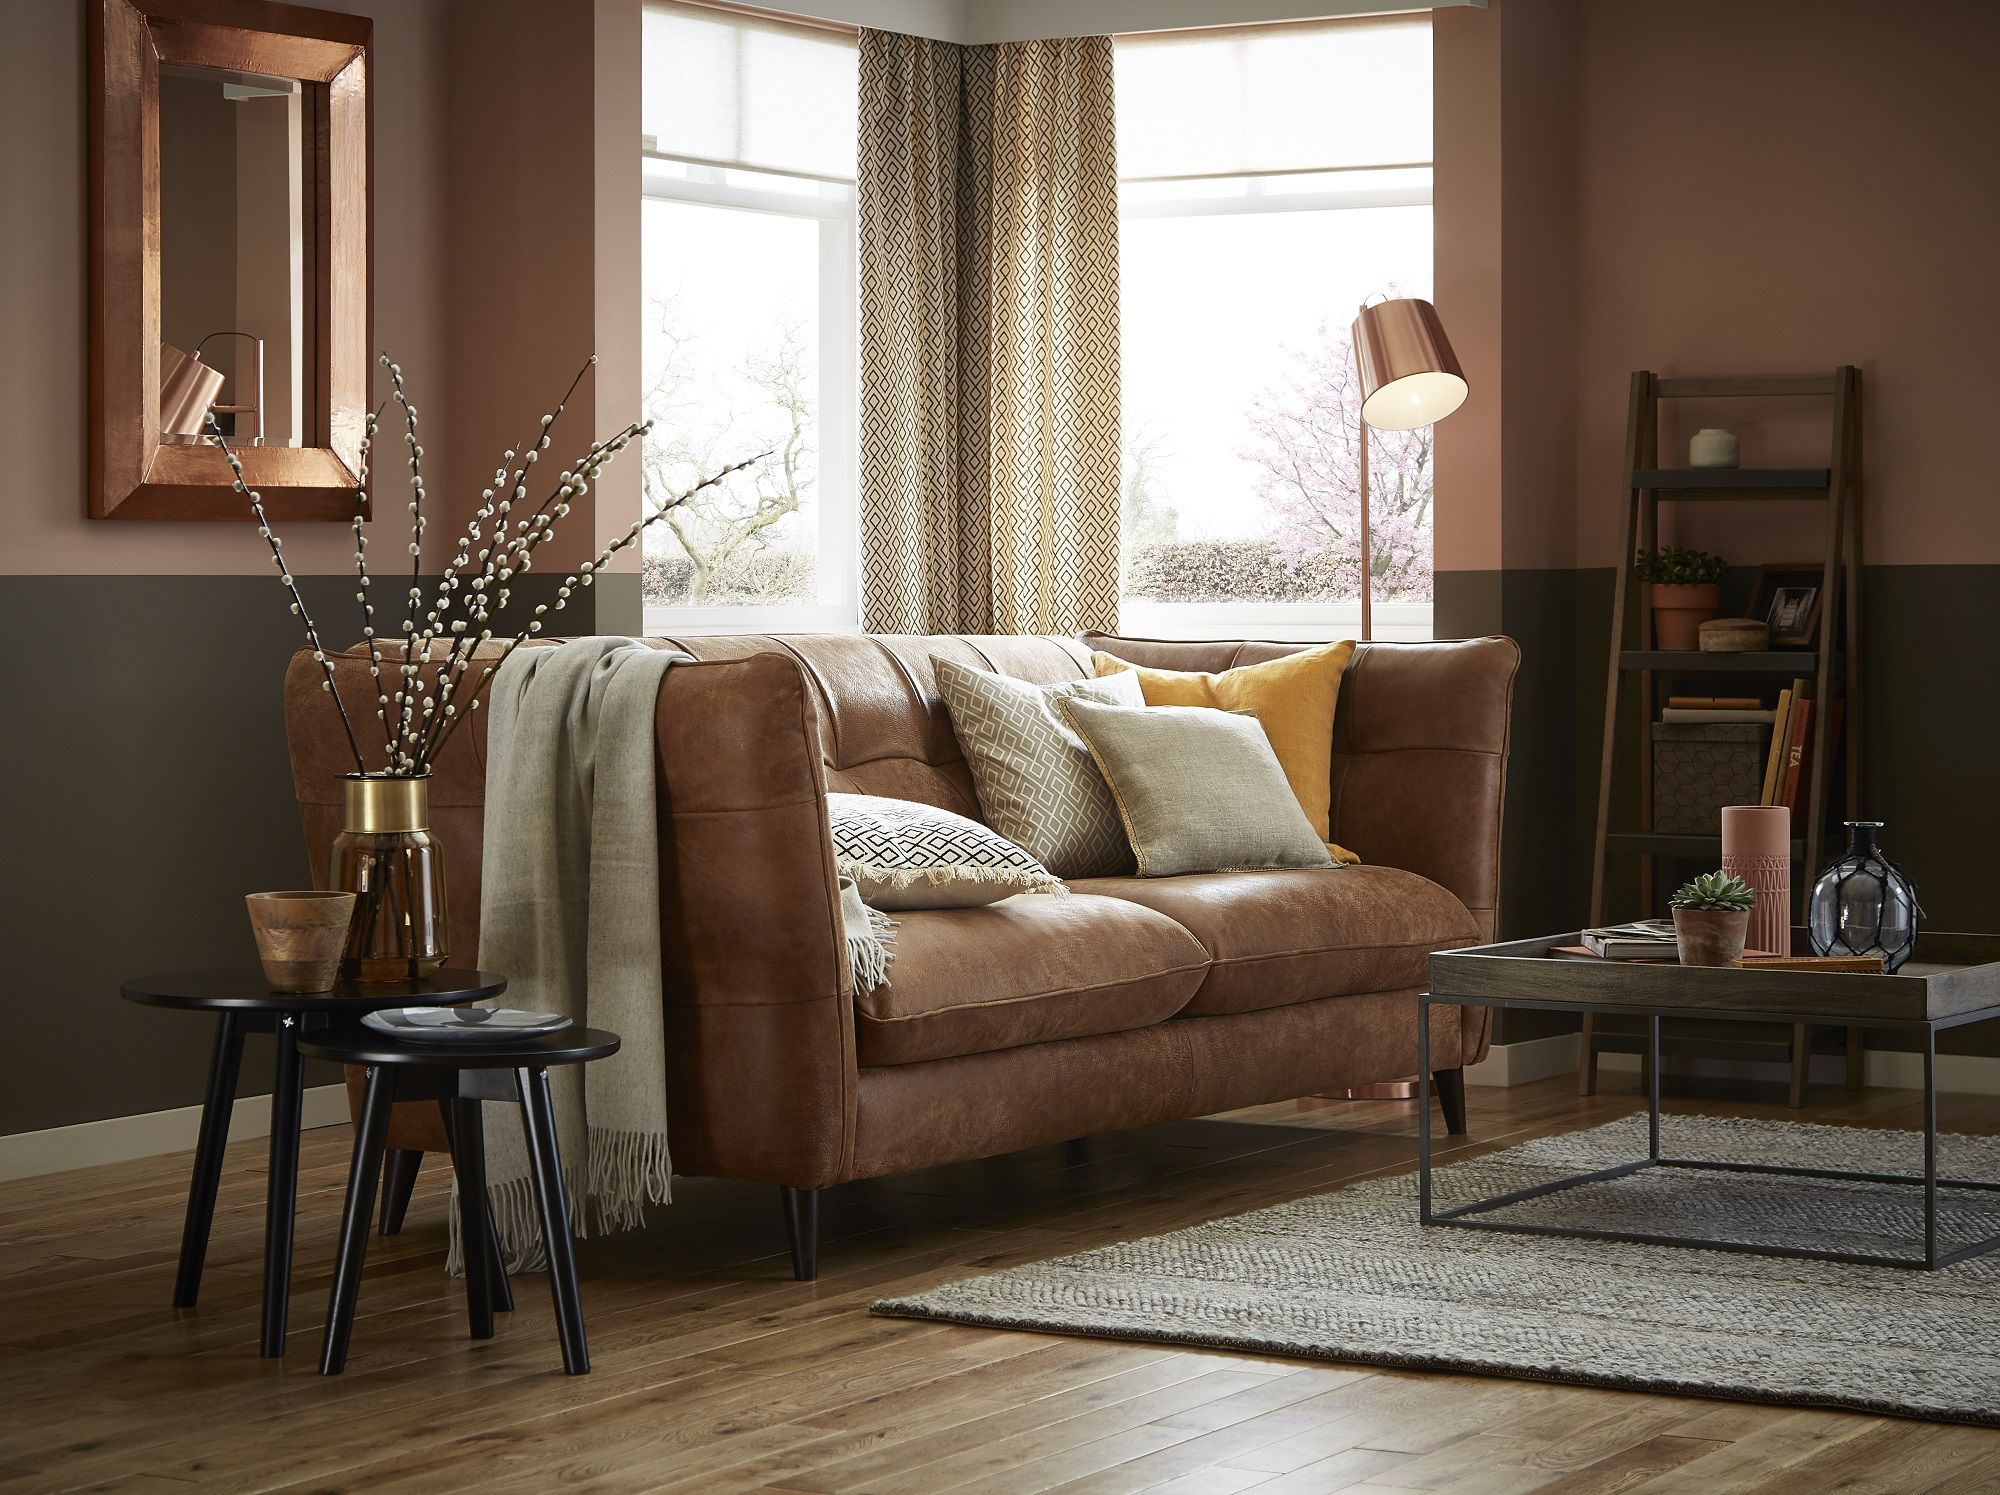 Best 25 Dfs leather sofa ideas on Pinterest